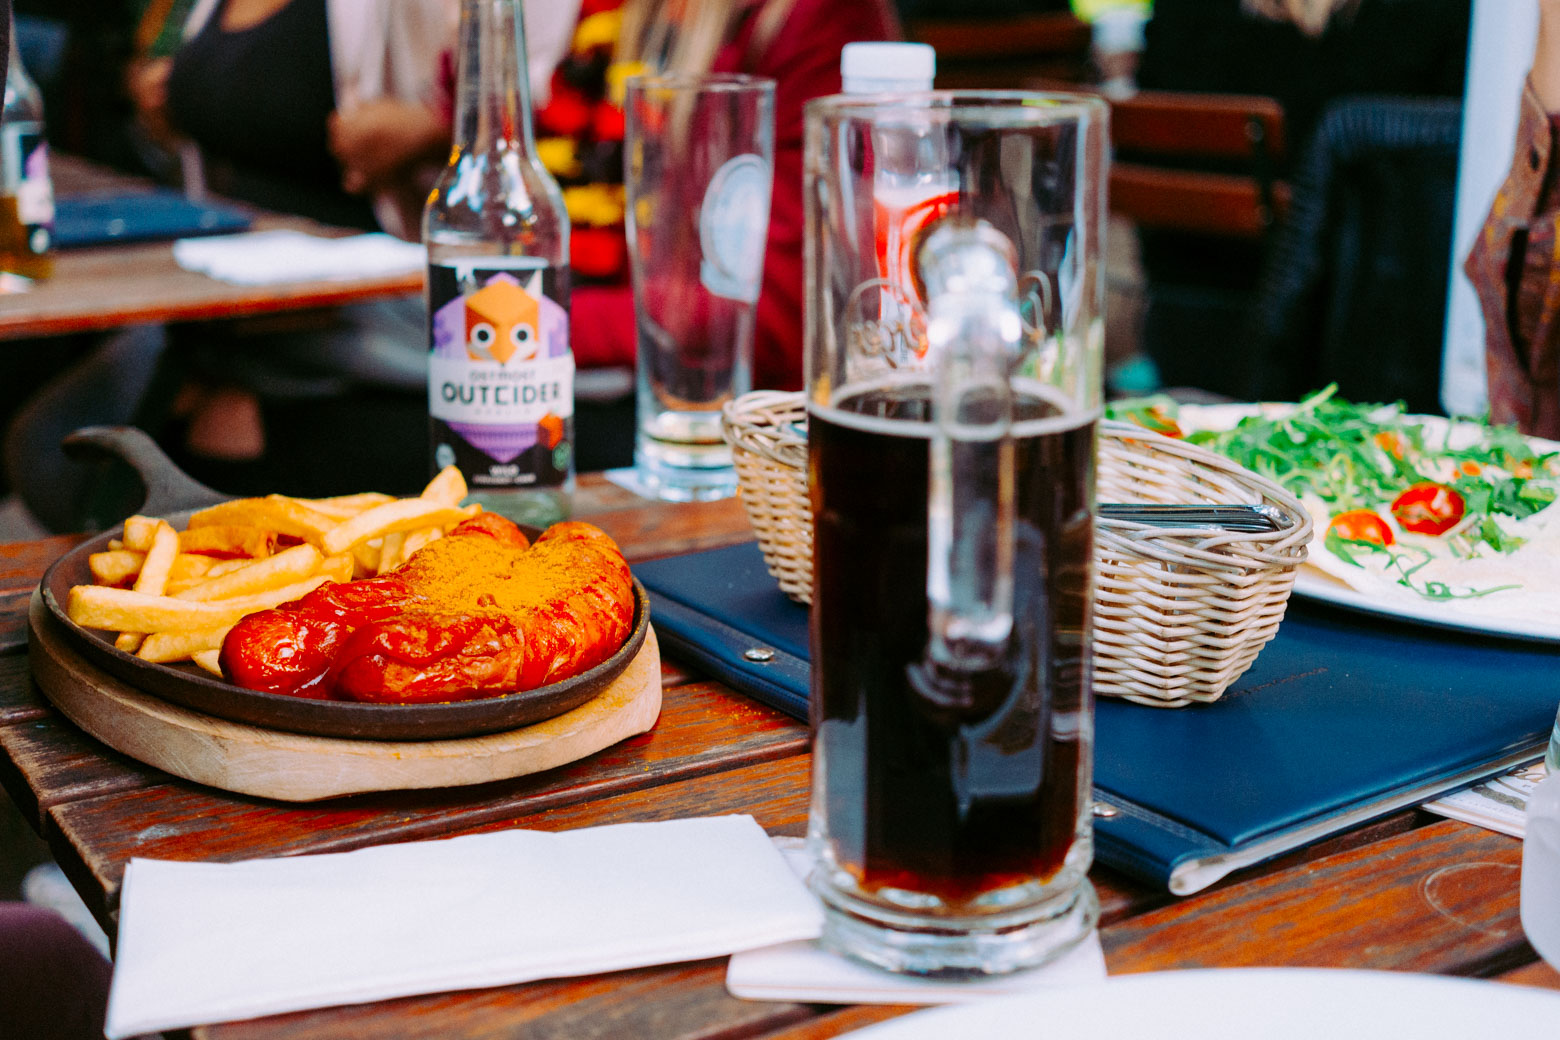 Practically any beer garden will have currywurst on hand